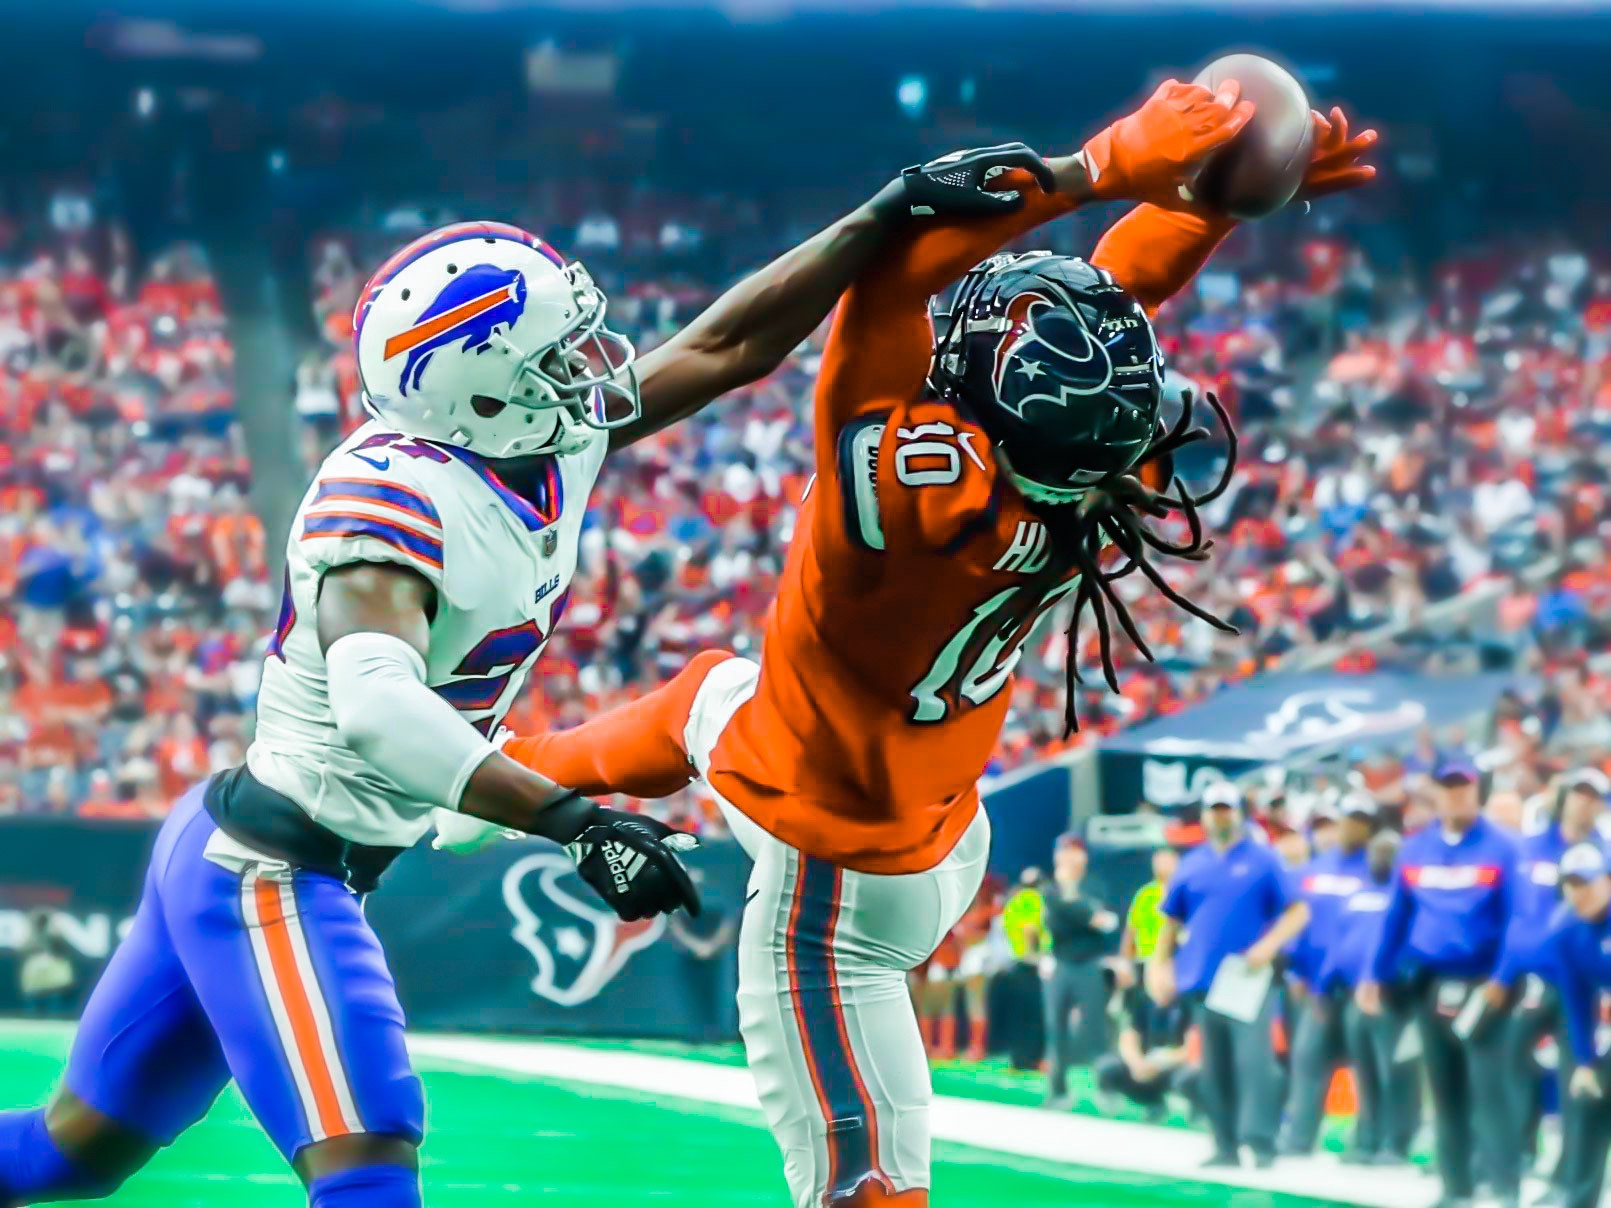 The Top 10 NFL Wide Receivers Heading Into the 2021 Season